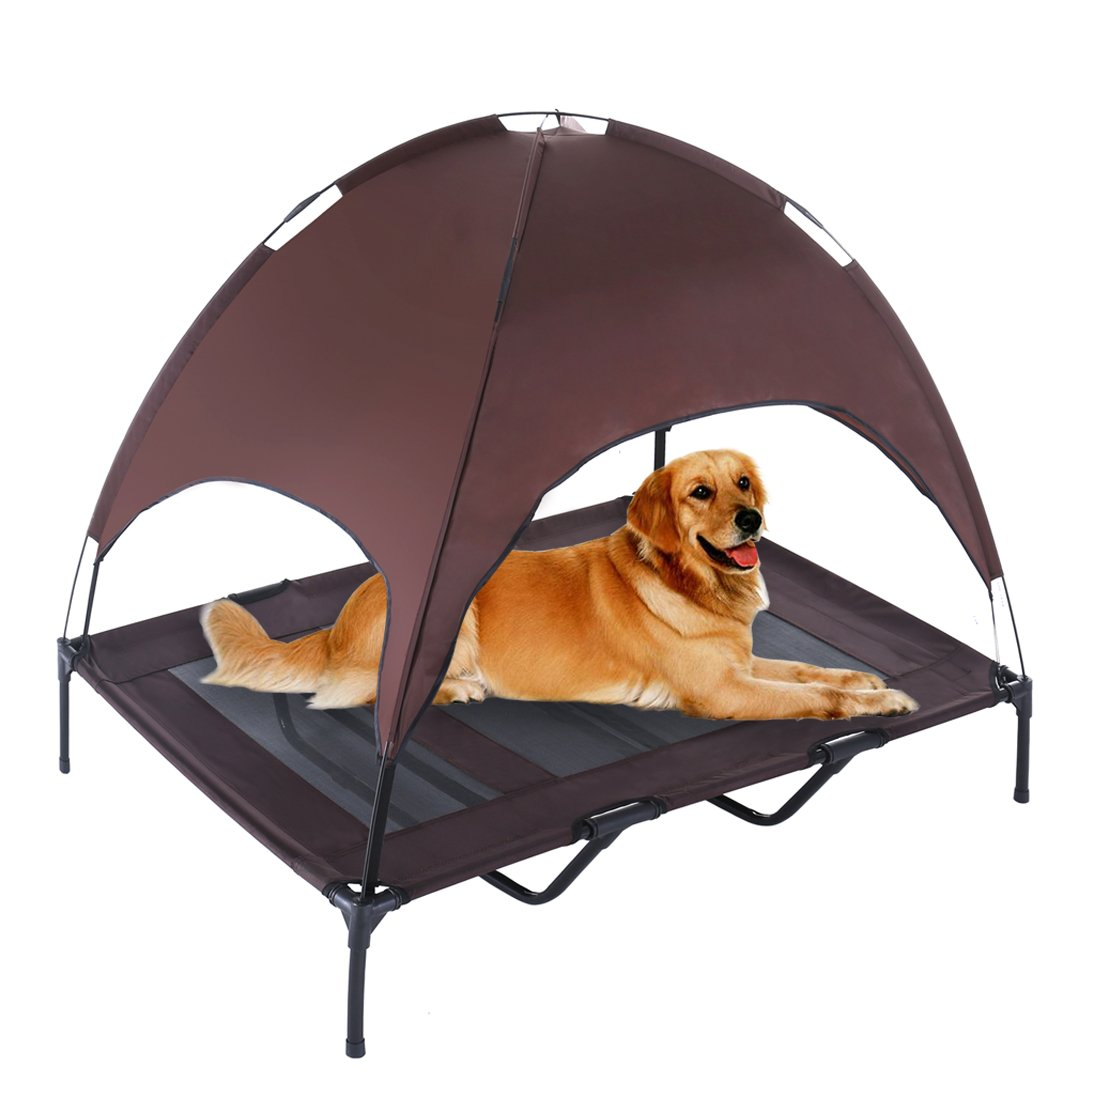 SUPERJARE XLarge Outdoor Dog Bed Elevated Pet Cot with Canopy | Portable for Camping or Beach | Durable 1680D Oxford Fabric | Brown